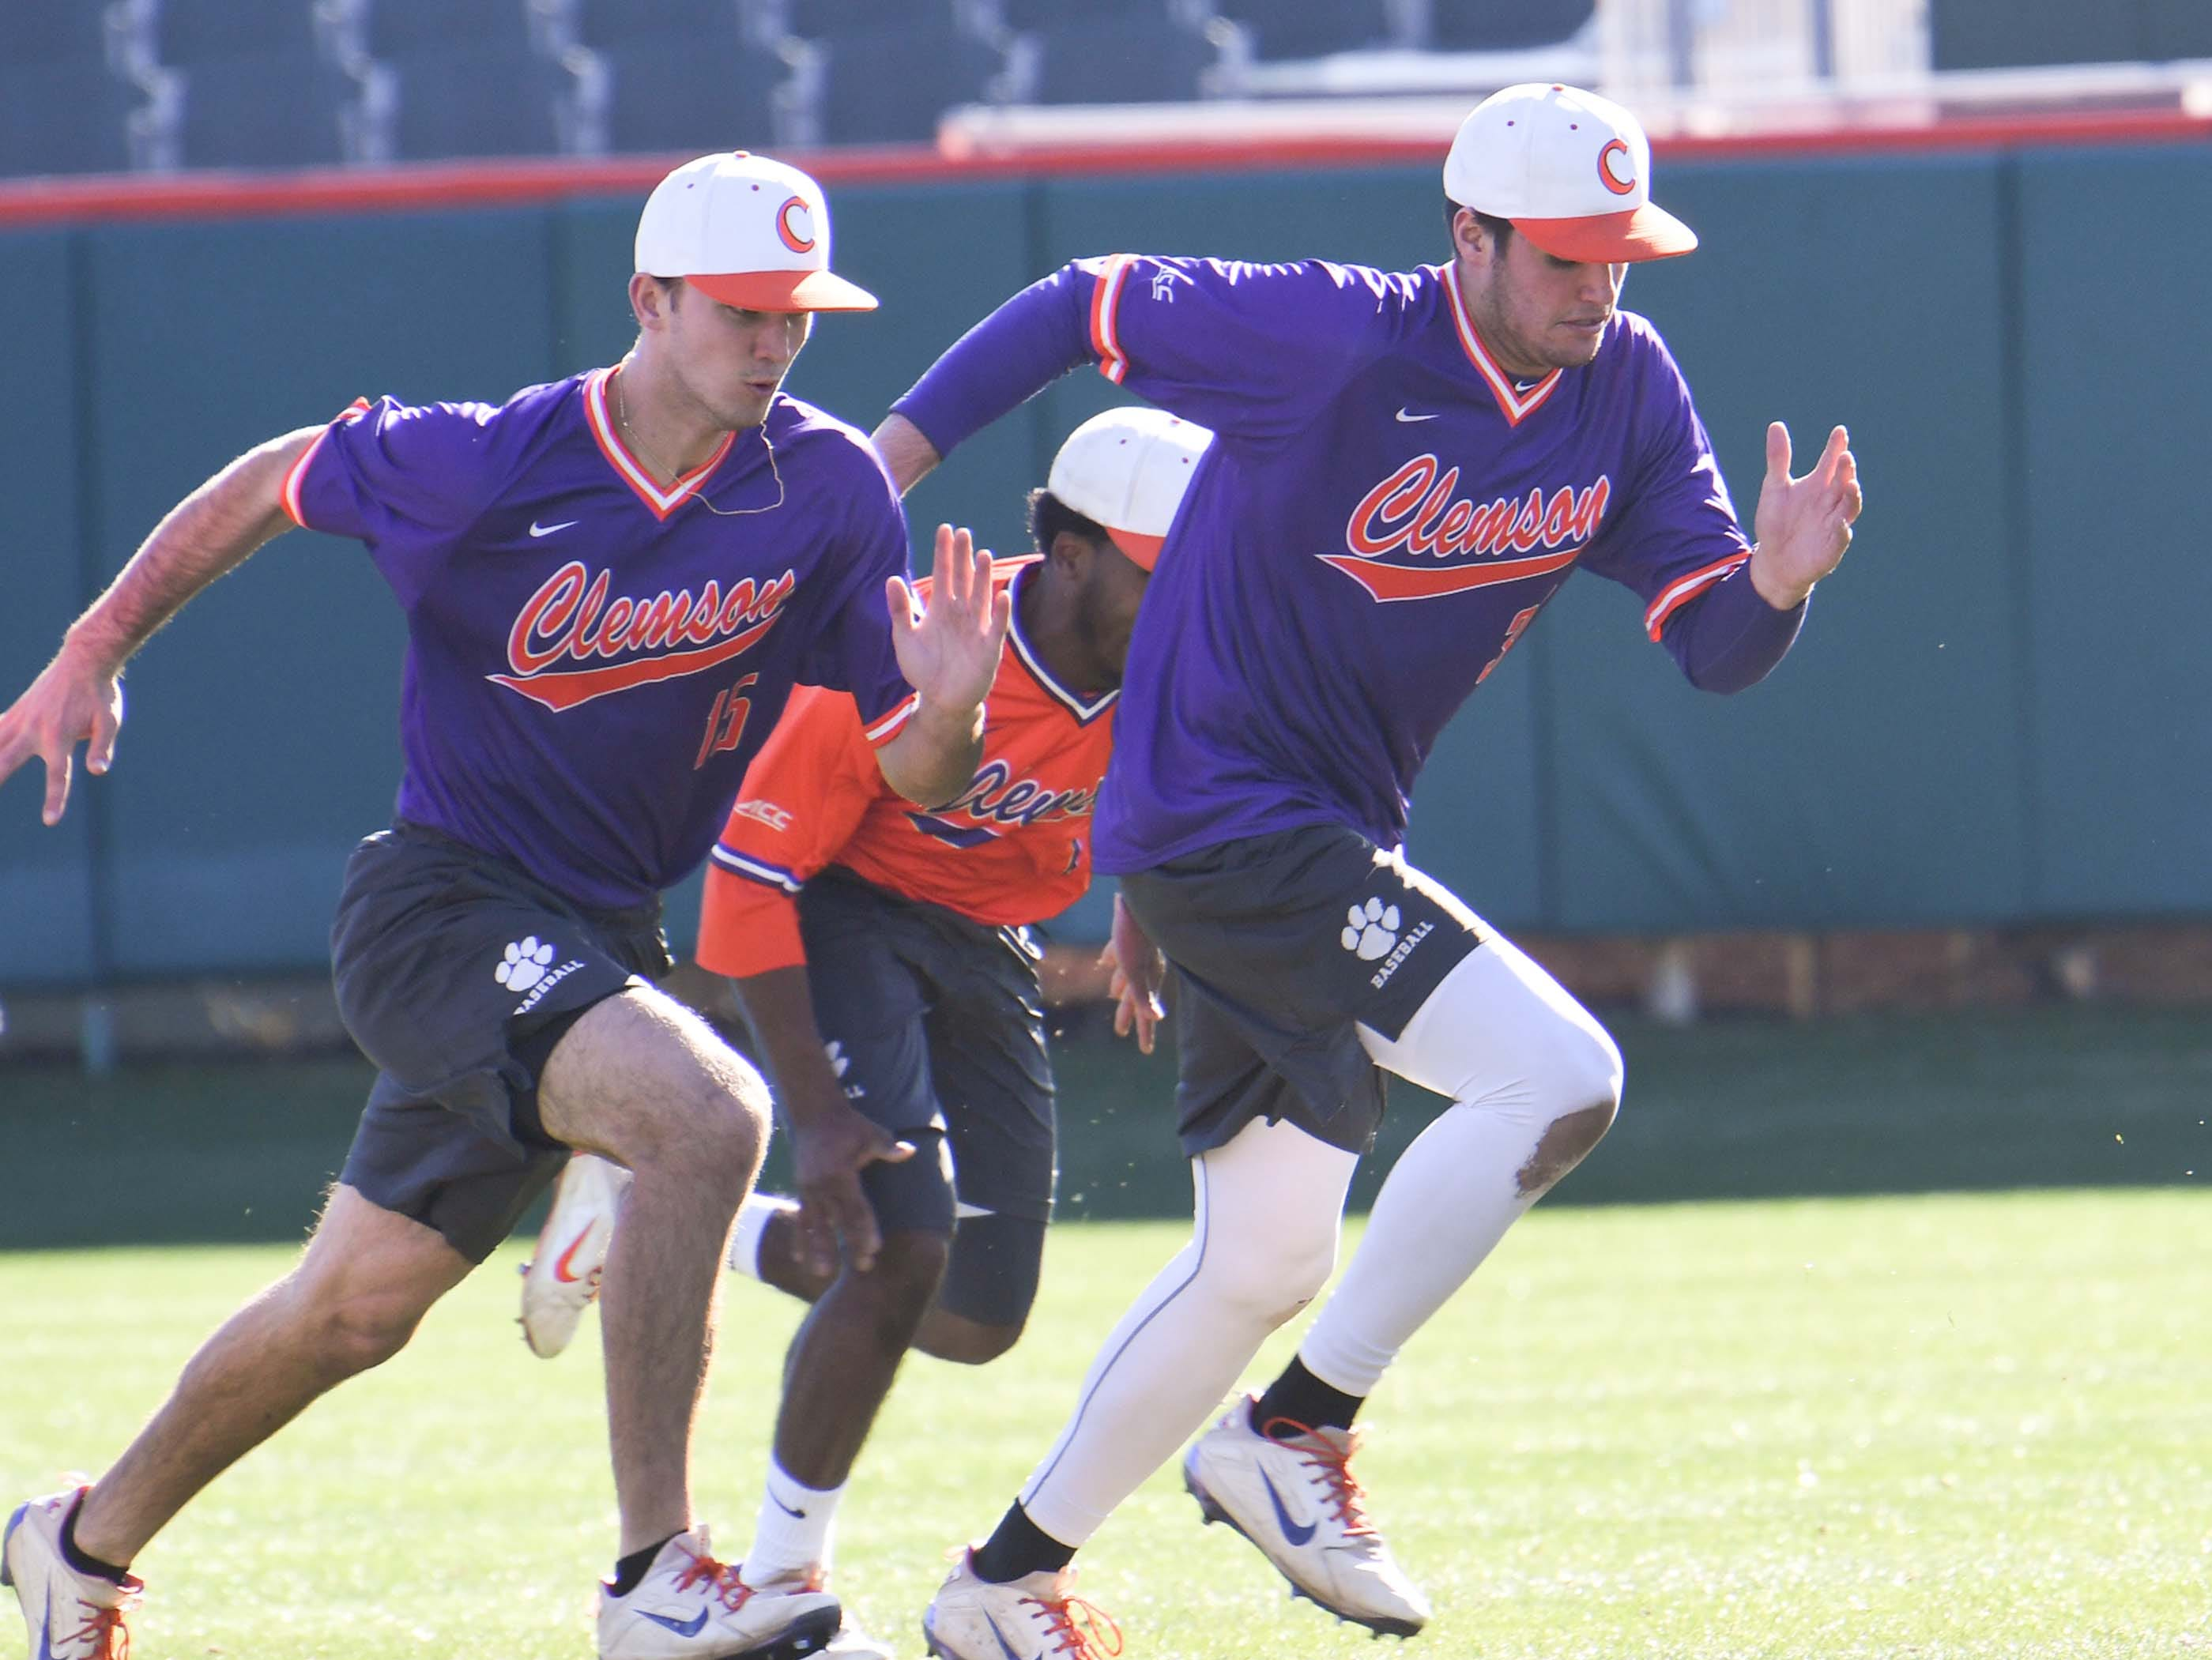 Clemson freshmen James Parker (15), left, and pitcher Davis Sharpe (30), warm up together during practice at Doug Kingsmore Stadium in Clemson Friday.